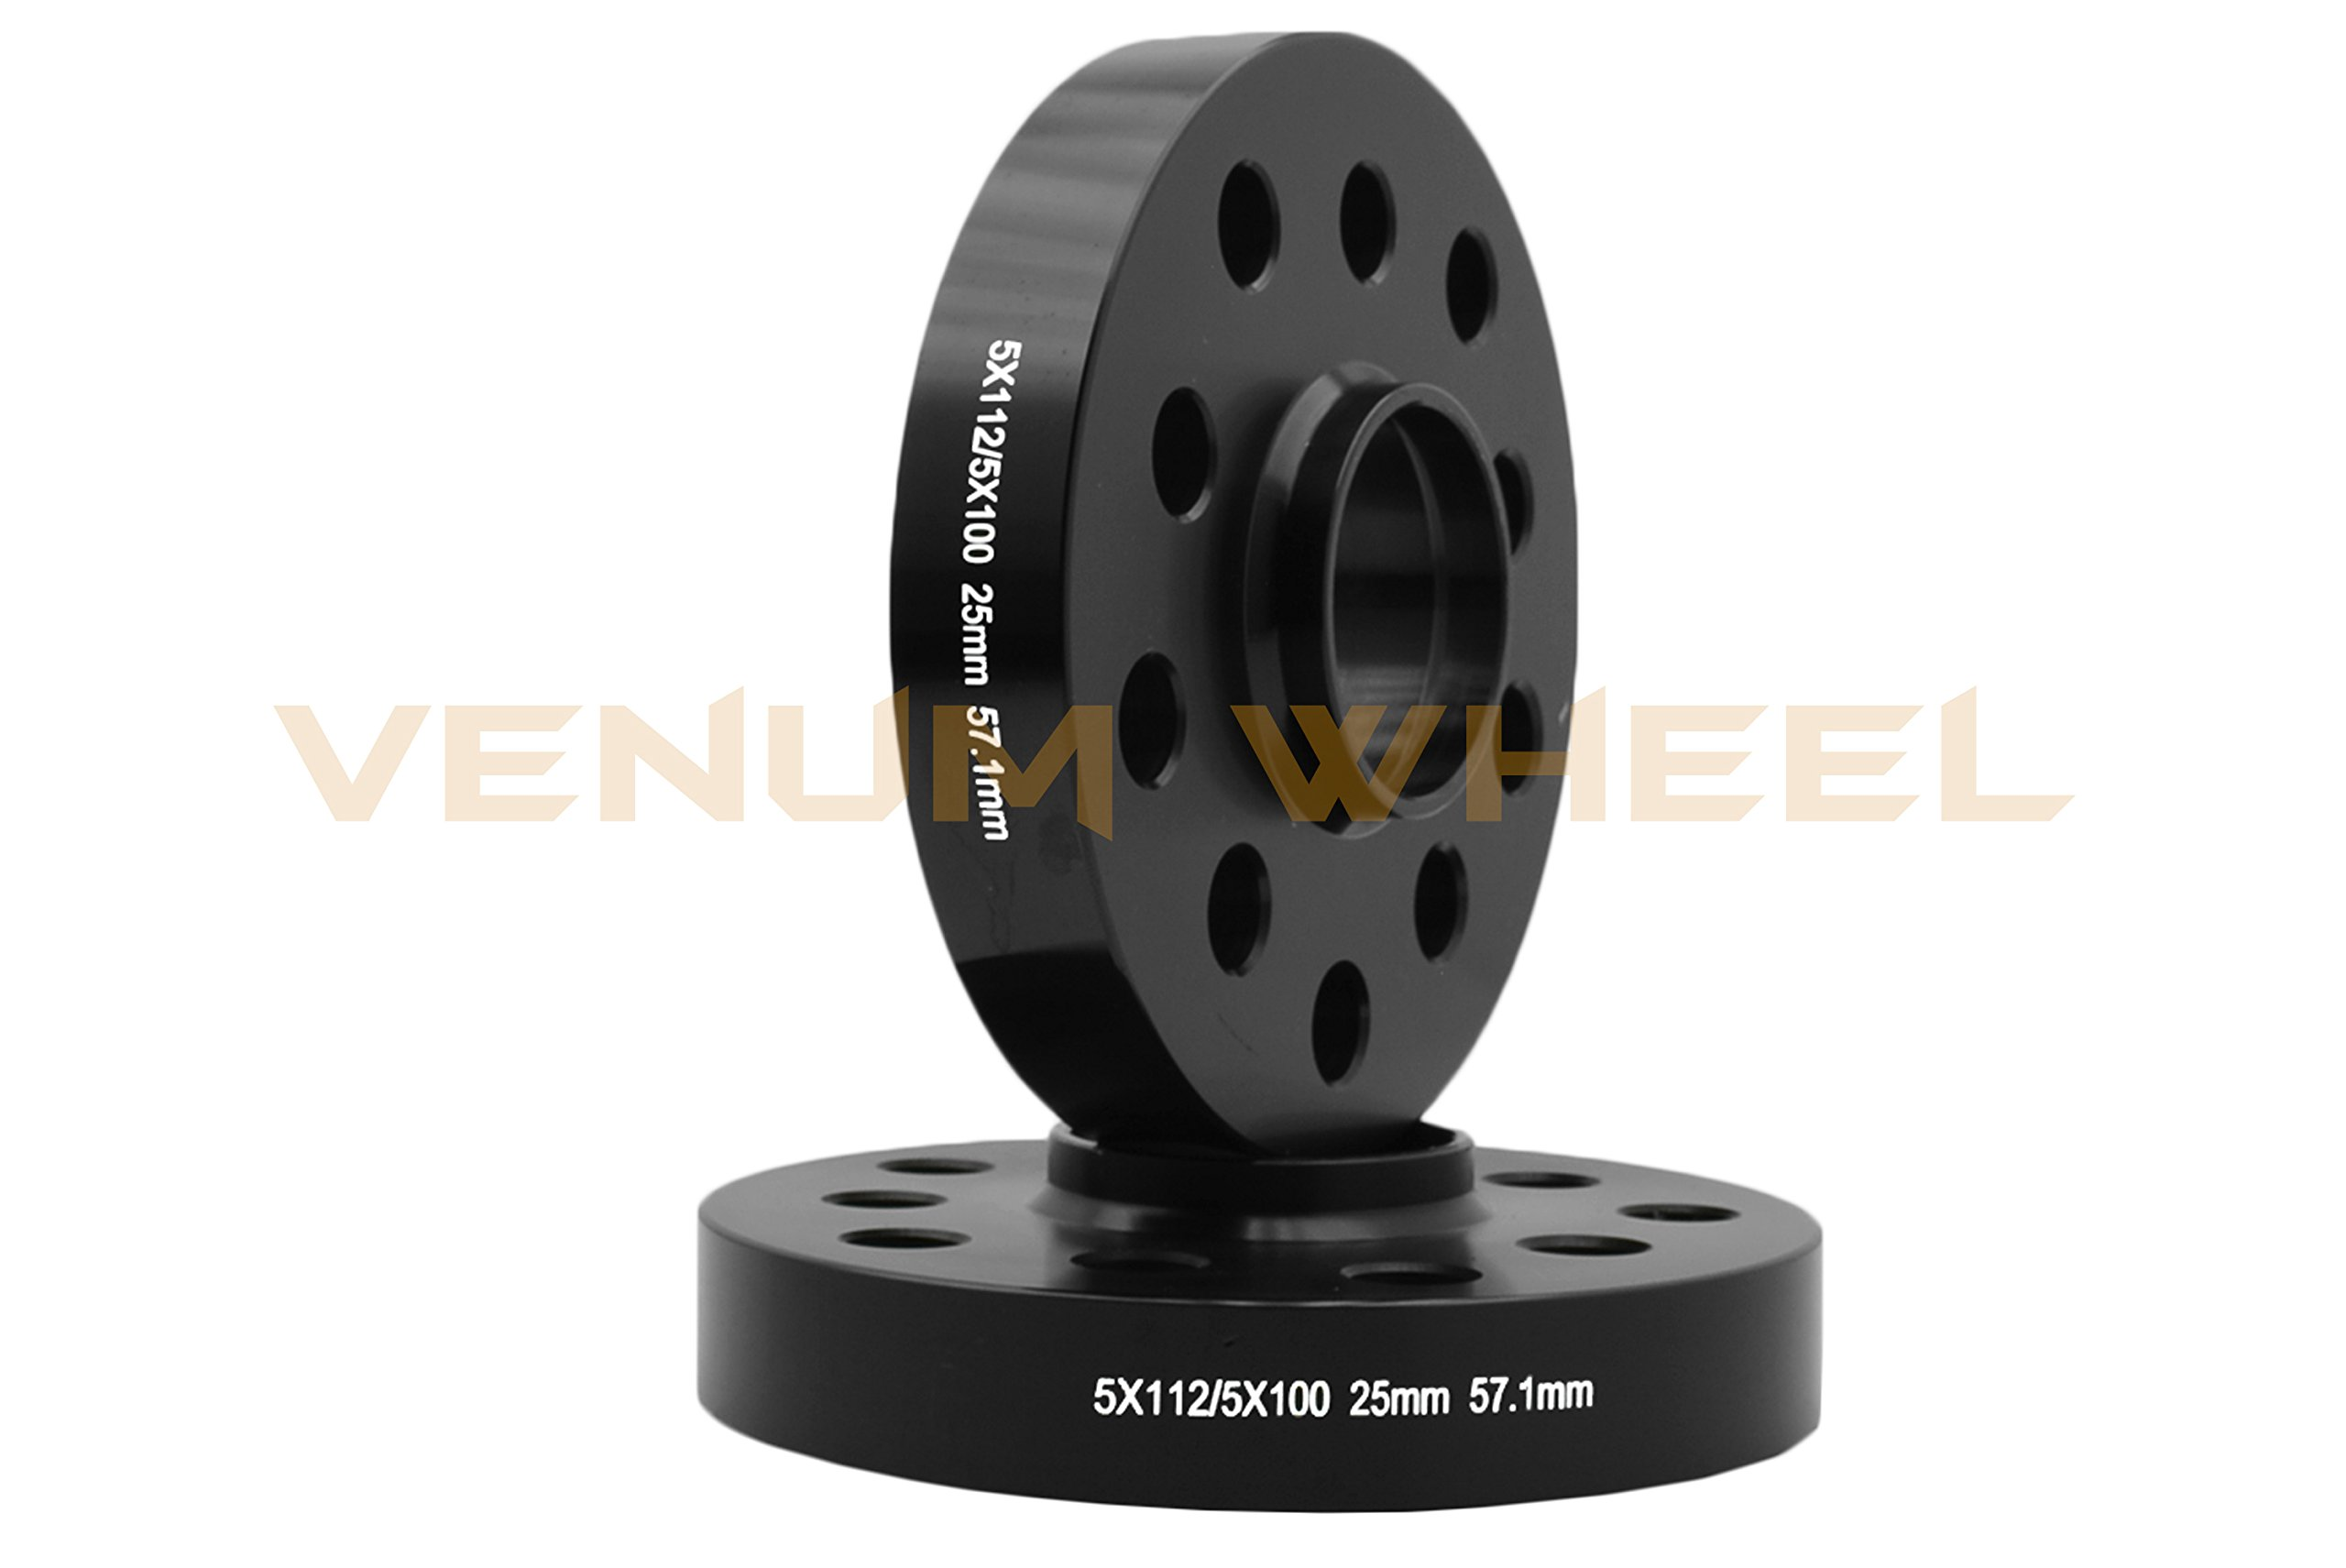 Complete Staggered Kit of 25mm & 30mm Black Hubcentric (57.1) Wheel Spacer Audi Volkswagen 5x100 & 5x112 Bolt Pattern + 20 Pc 14x1.5 Black Ball Seat Lug Bolts … by Venum wheel accessories (Image #3)